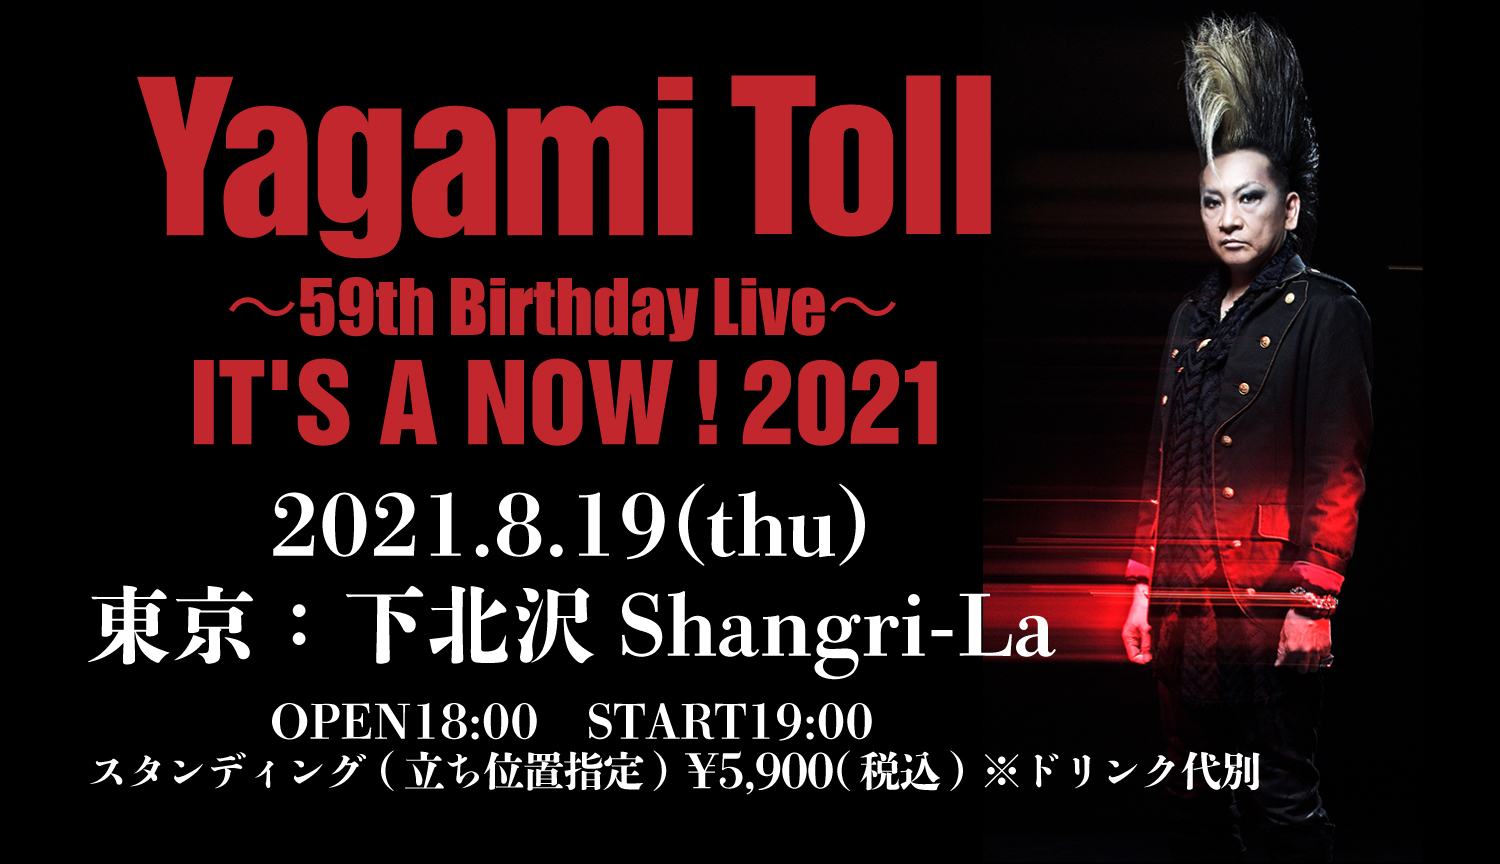 Yagami Toll ~59th Birthday Live~ IT'S A NOW!2021